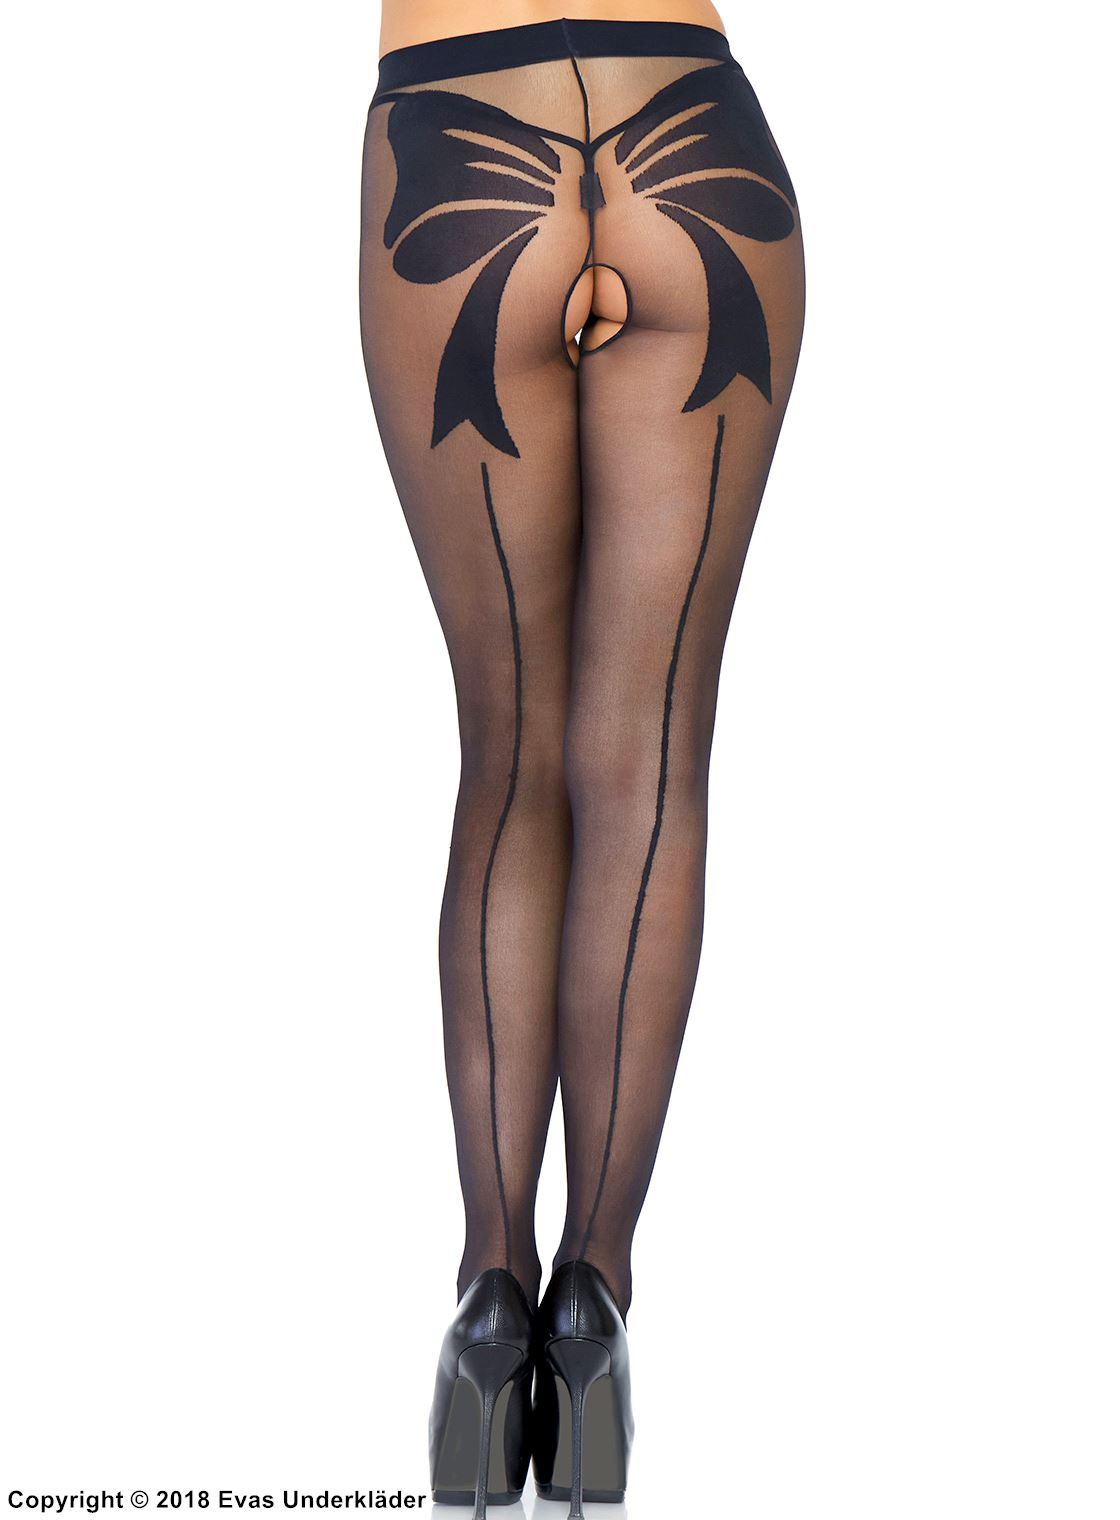 Pantyhose with pattern